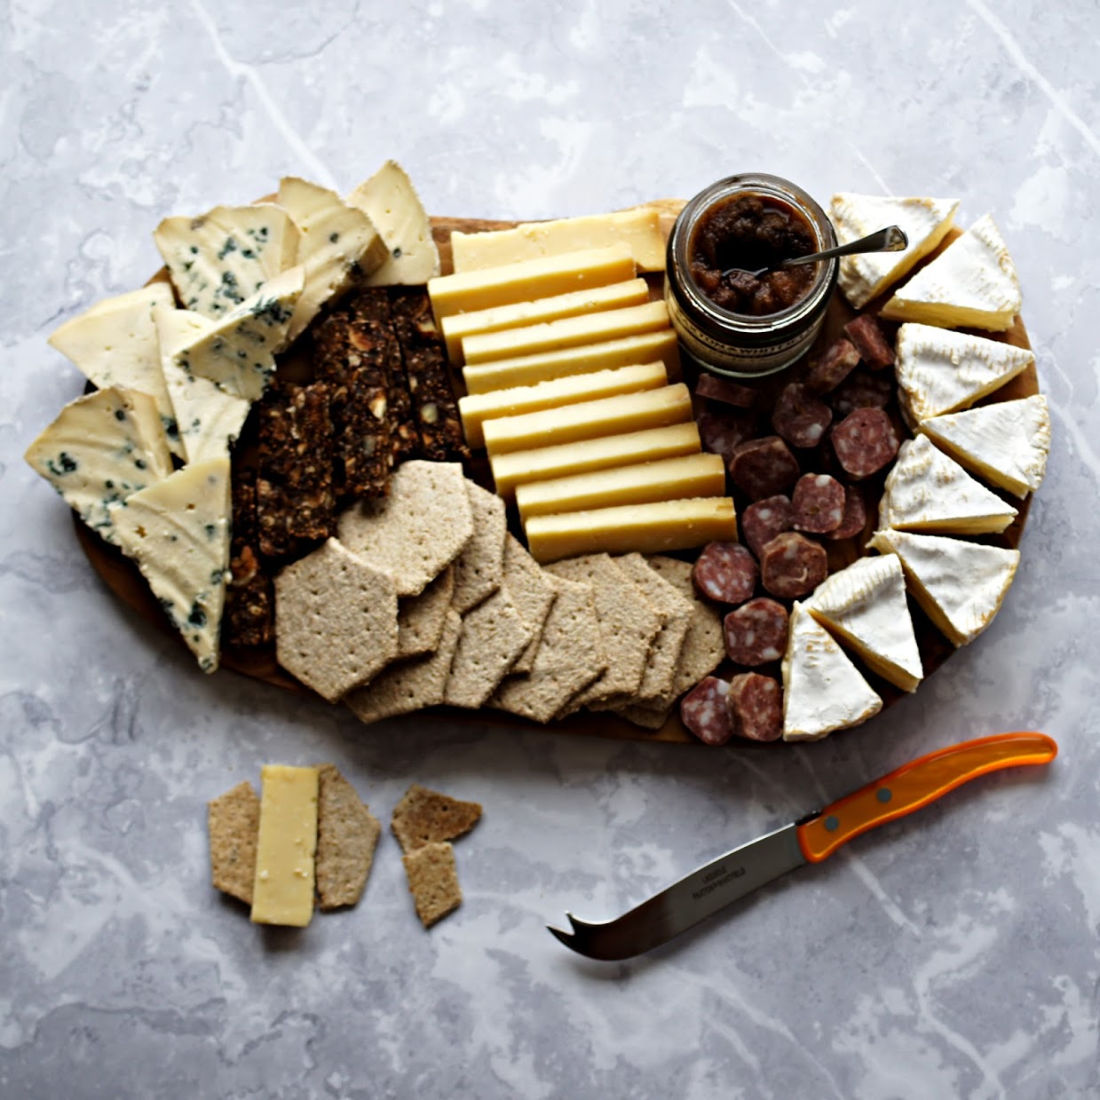 MYO-British-Cheeseboard-Messy-Flat-Lay-Low-Res